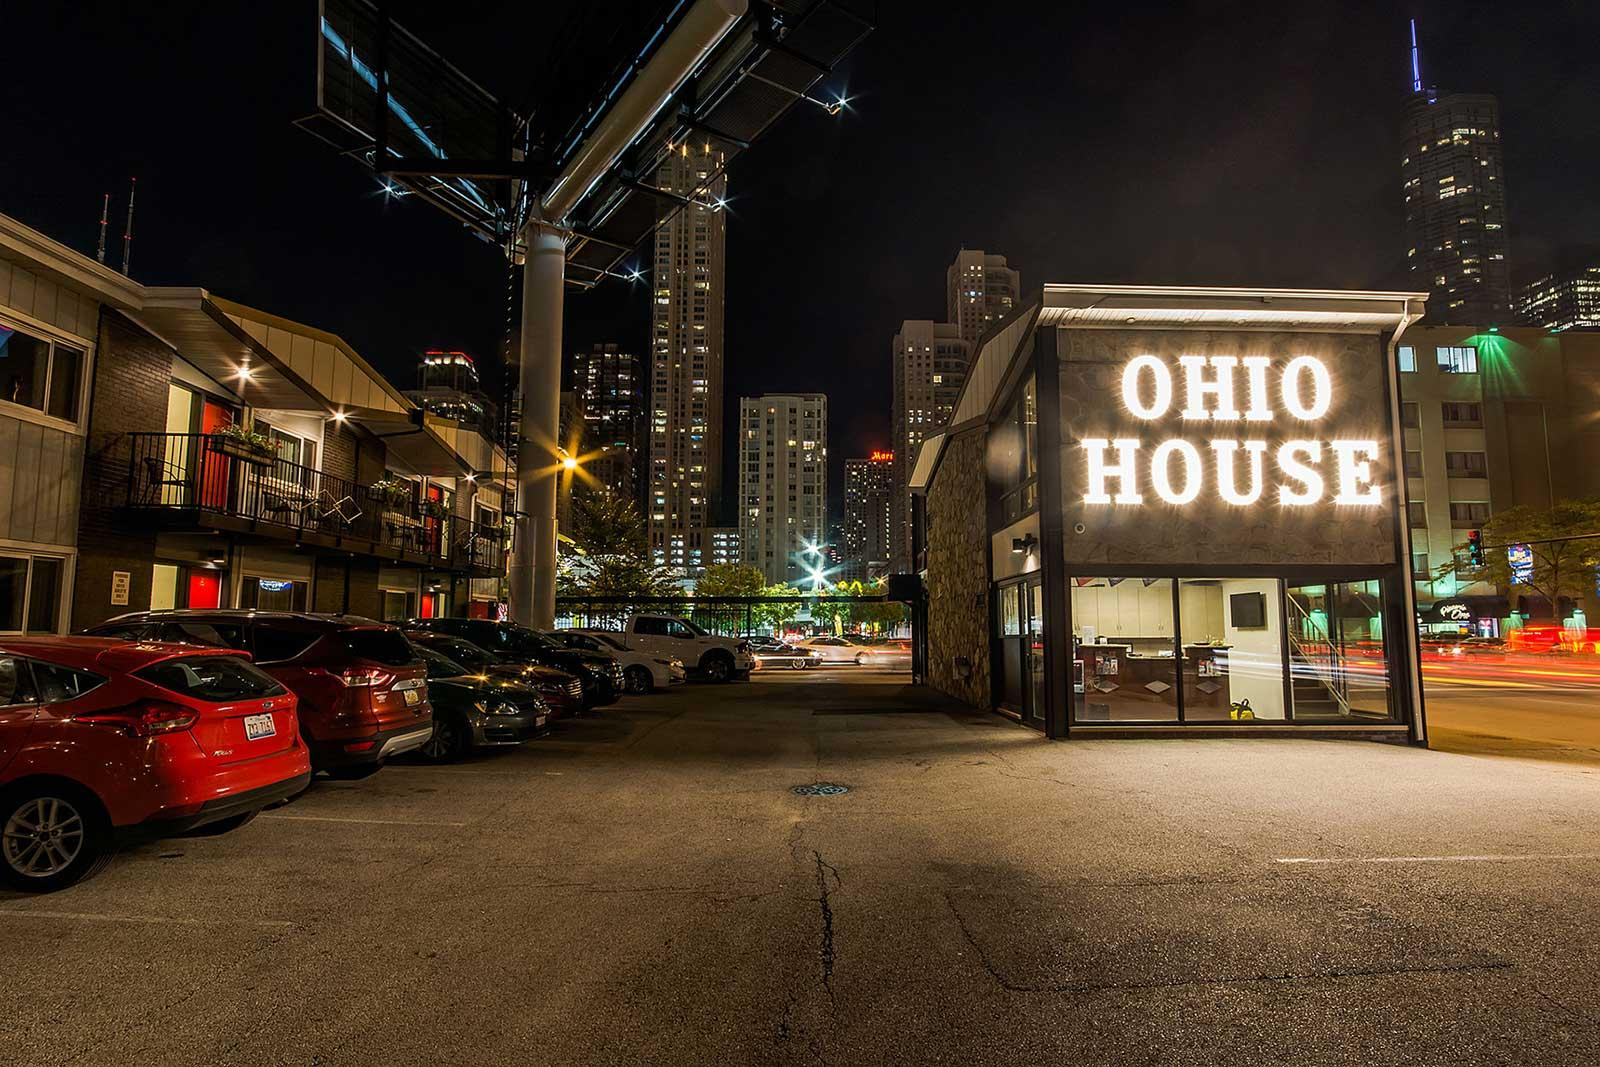 Ohio House Motel in Chicago's River North - Free Parking For